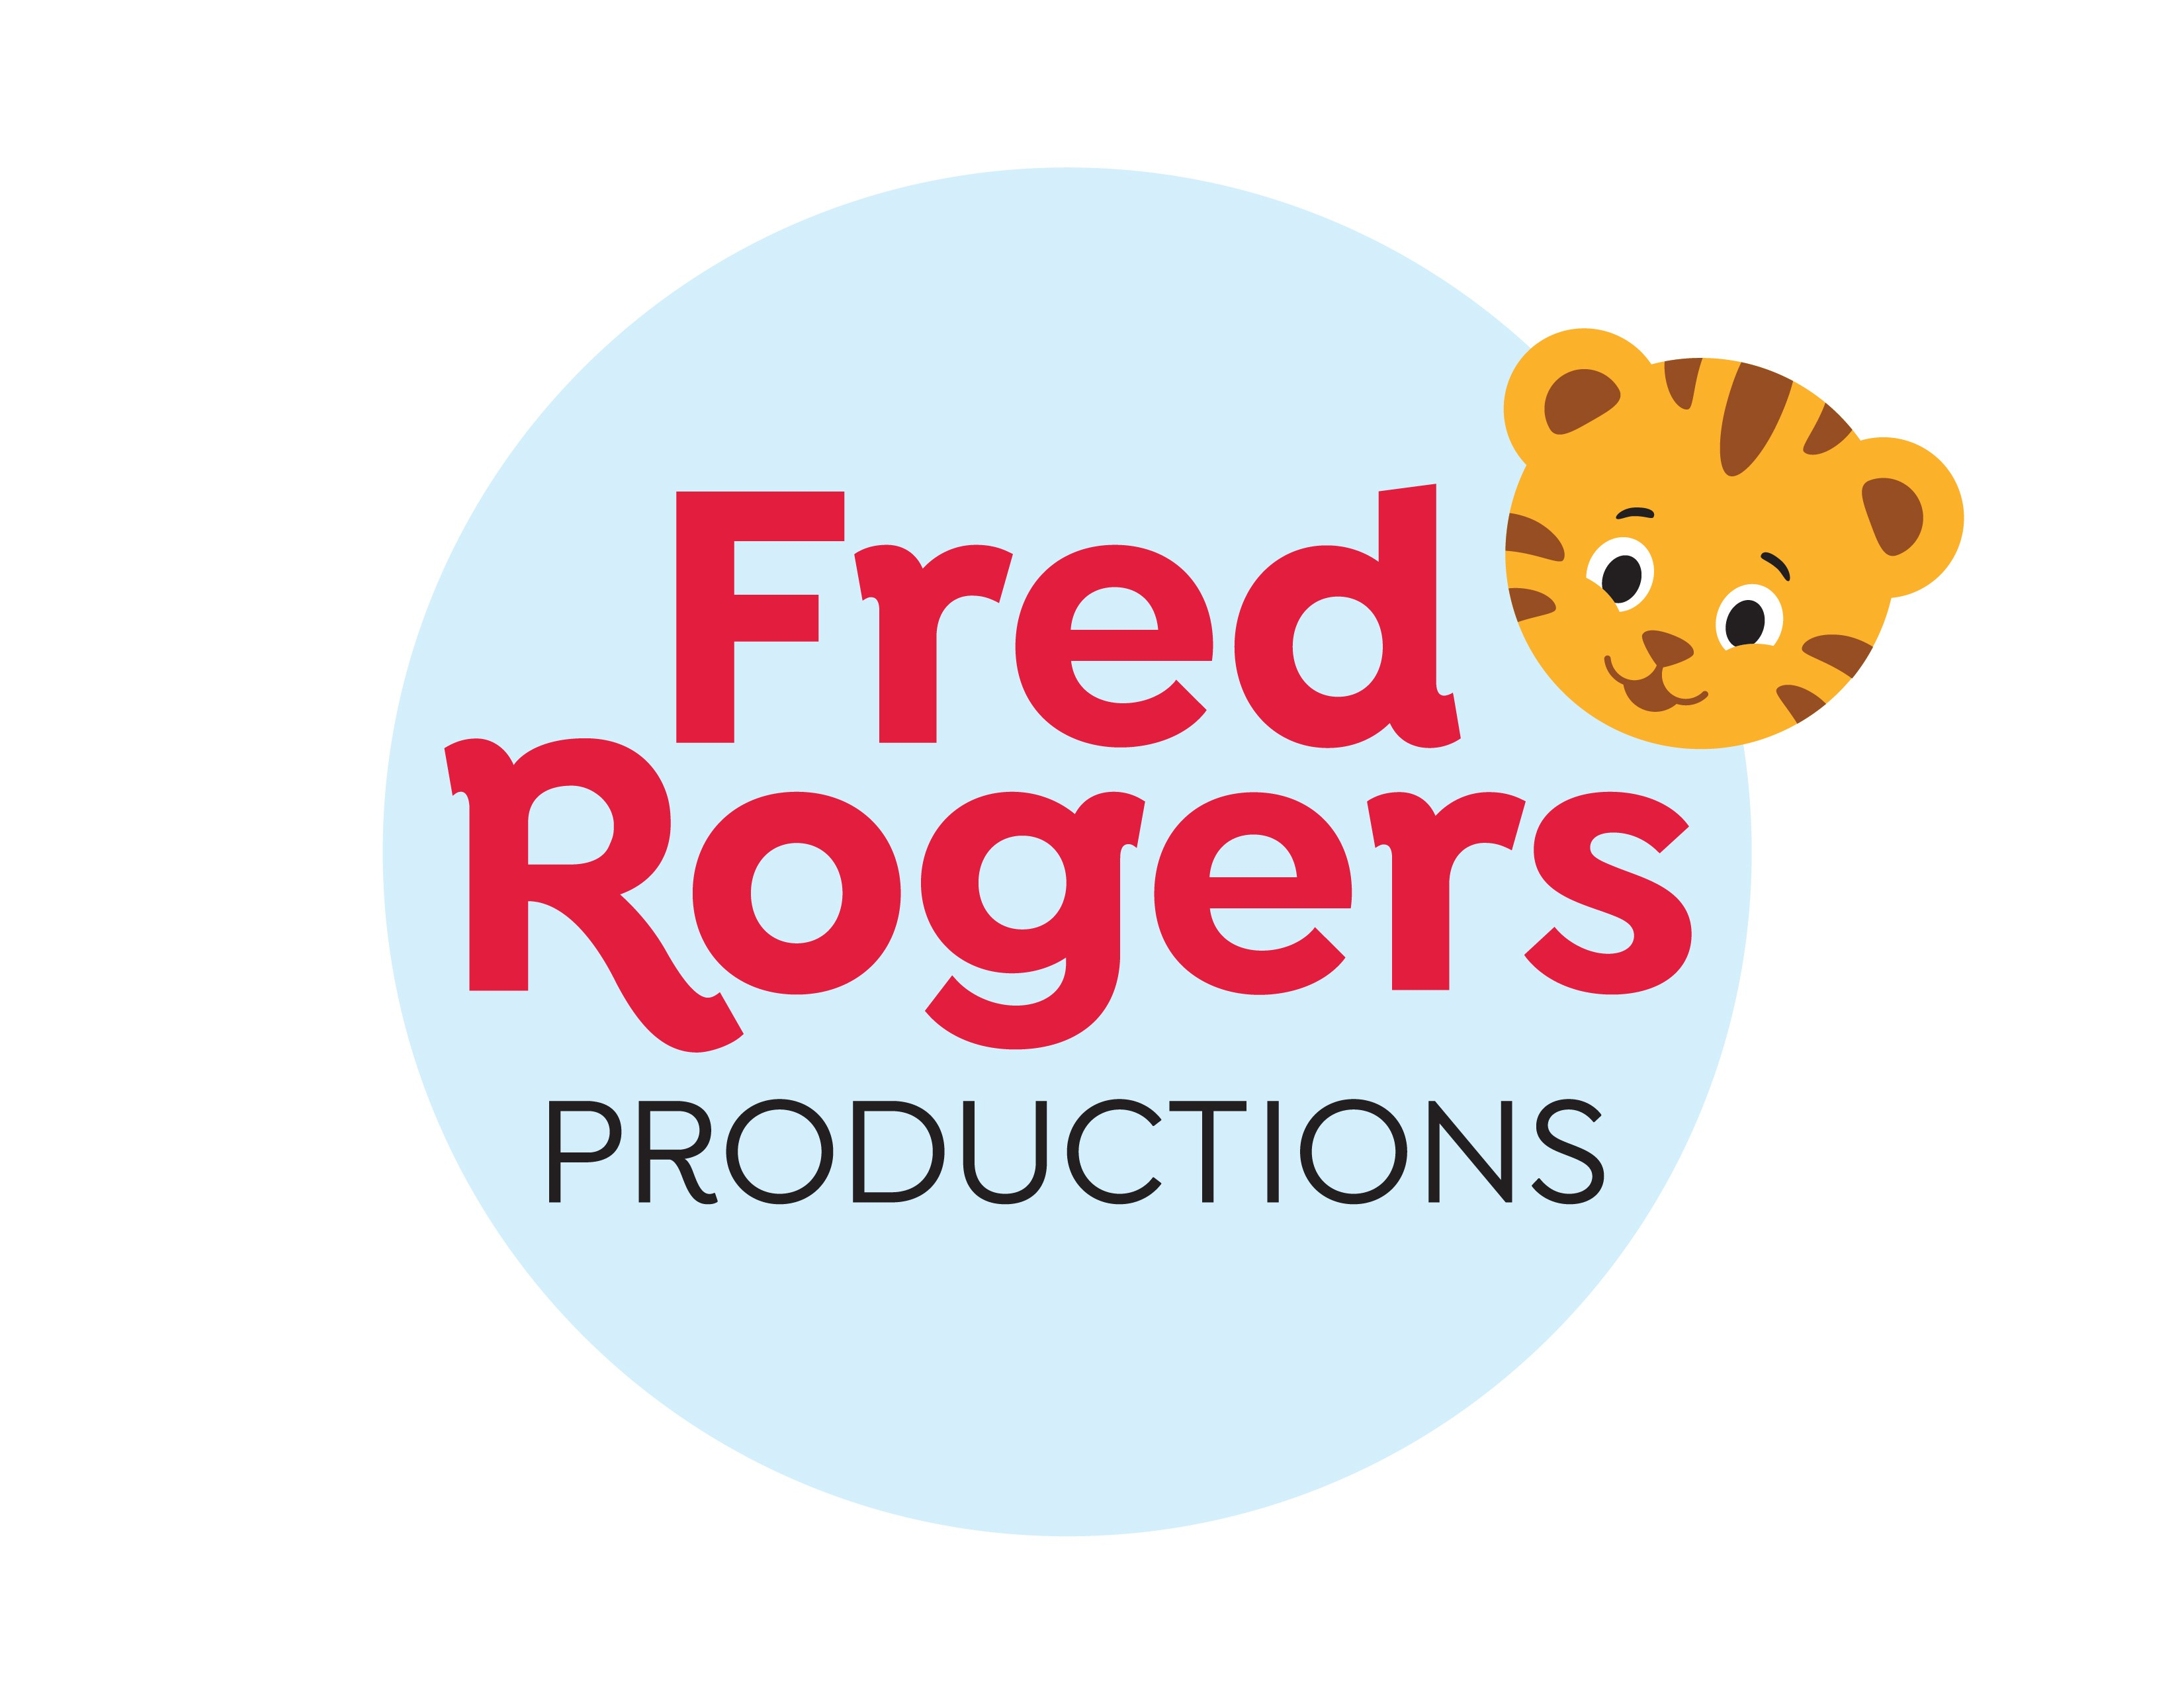 Fred Rogers Productions